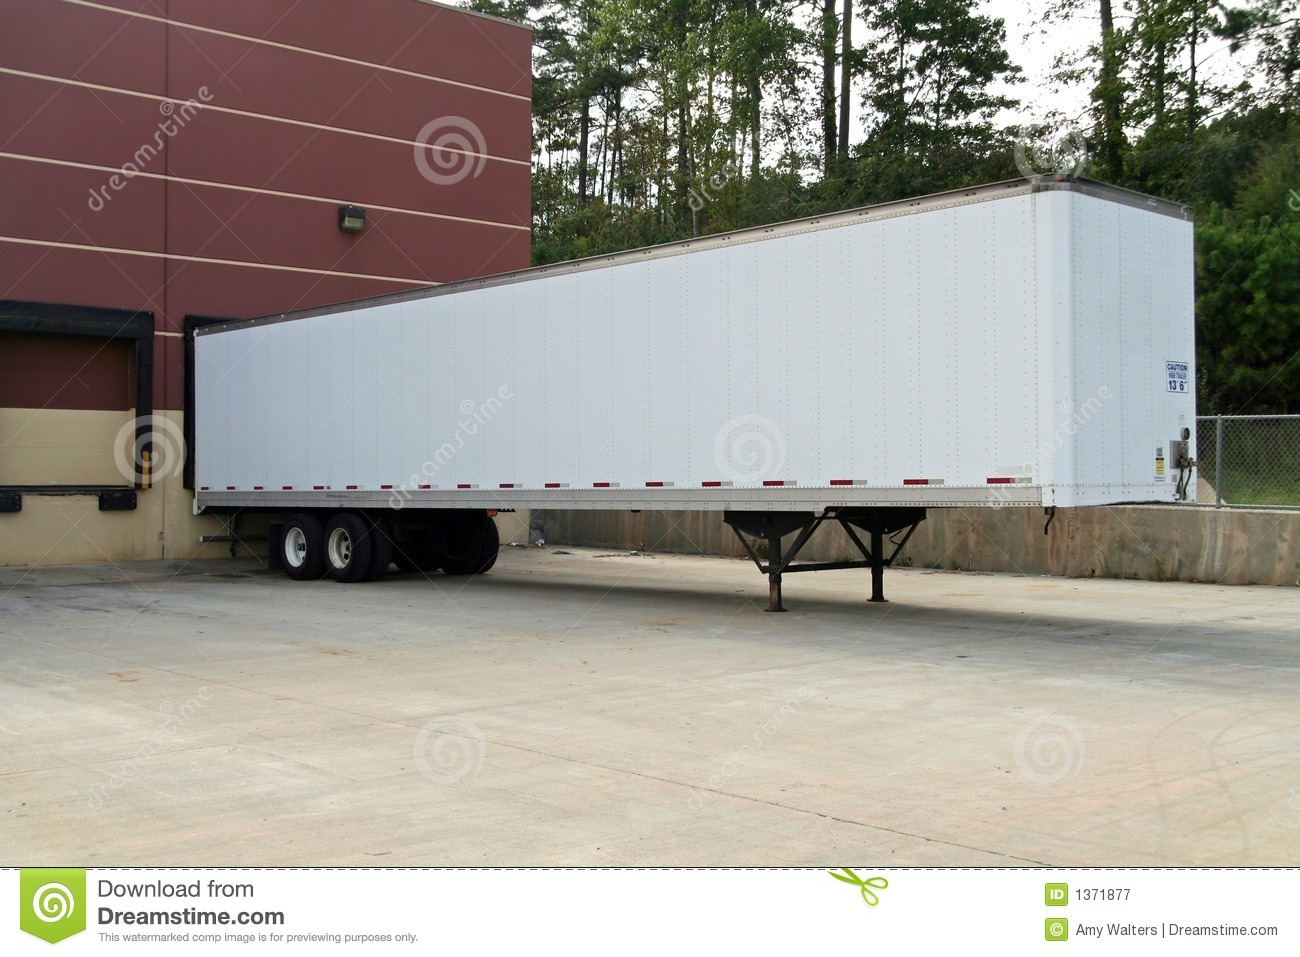 Tractor Trailer Stock : Blank tractor trailer parked at the loading dock stock